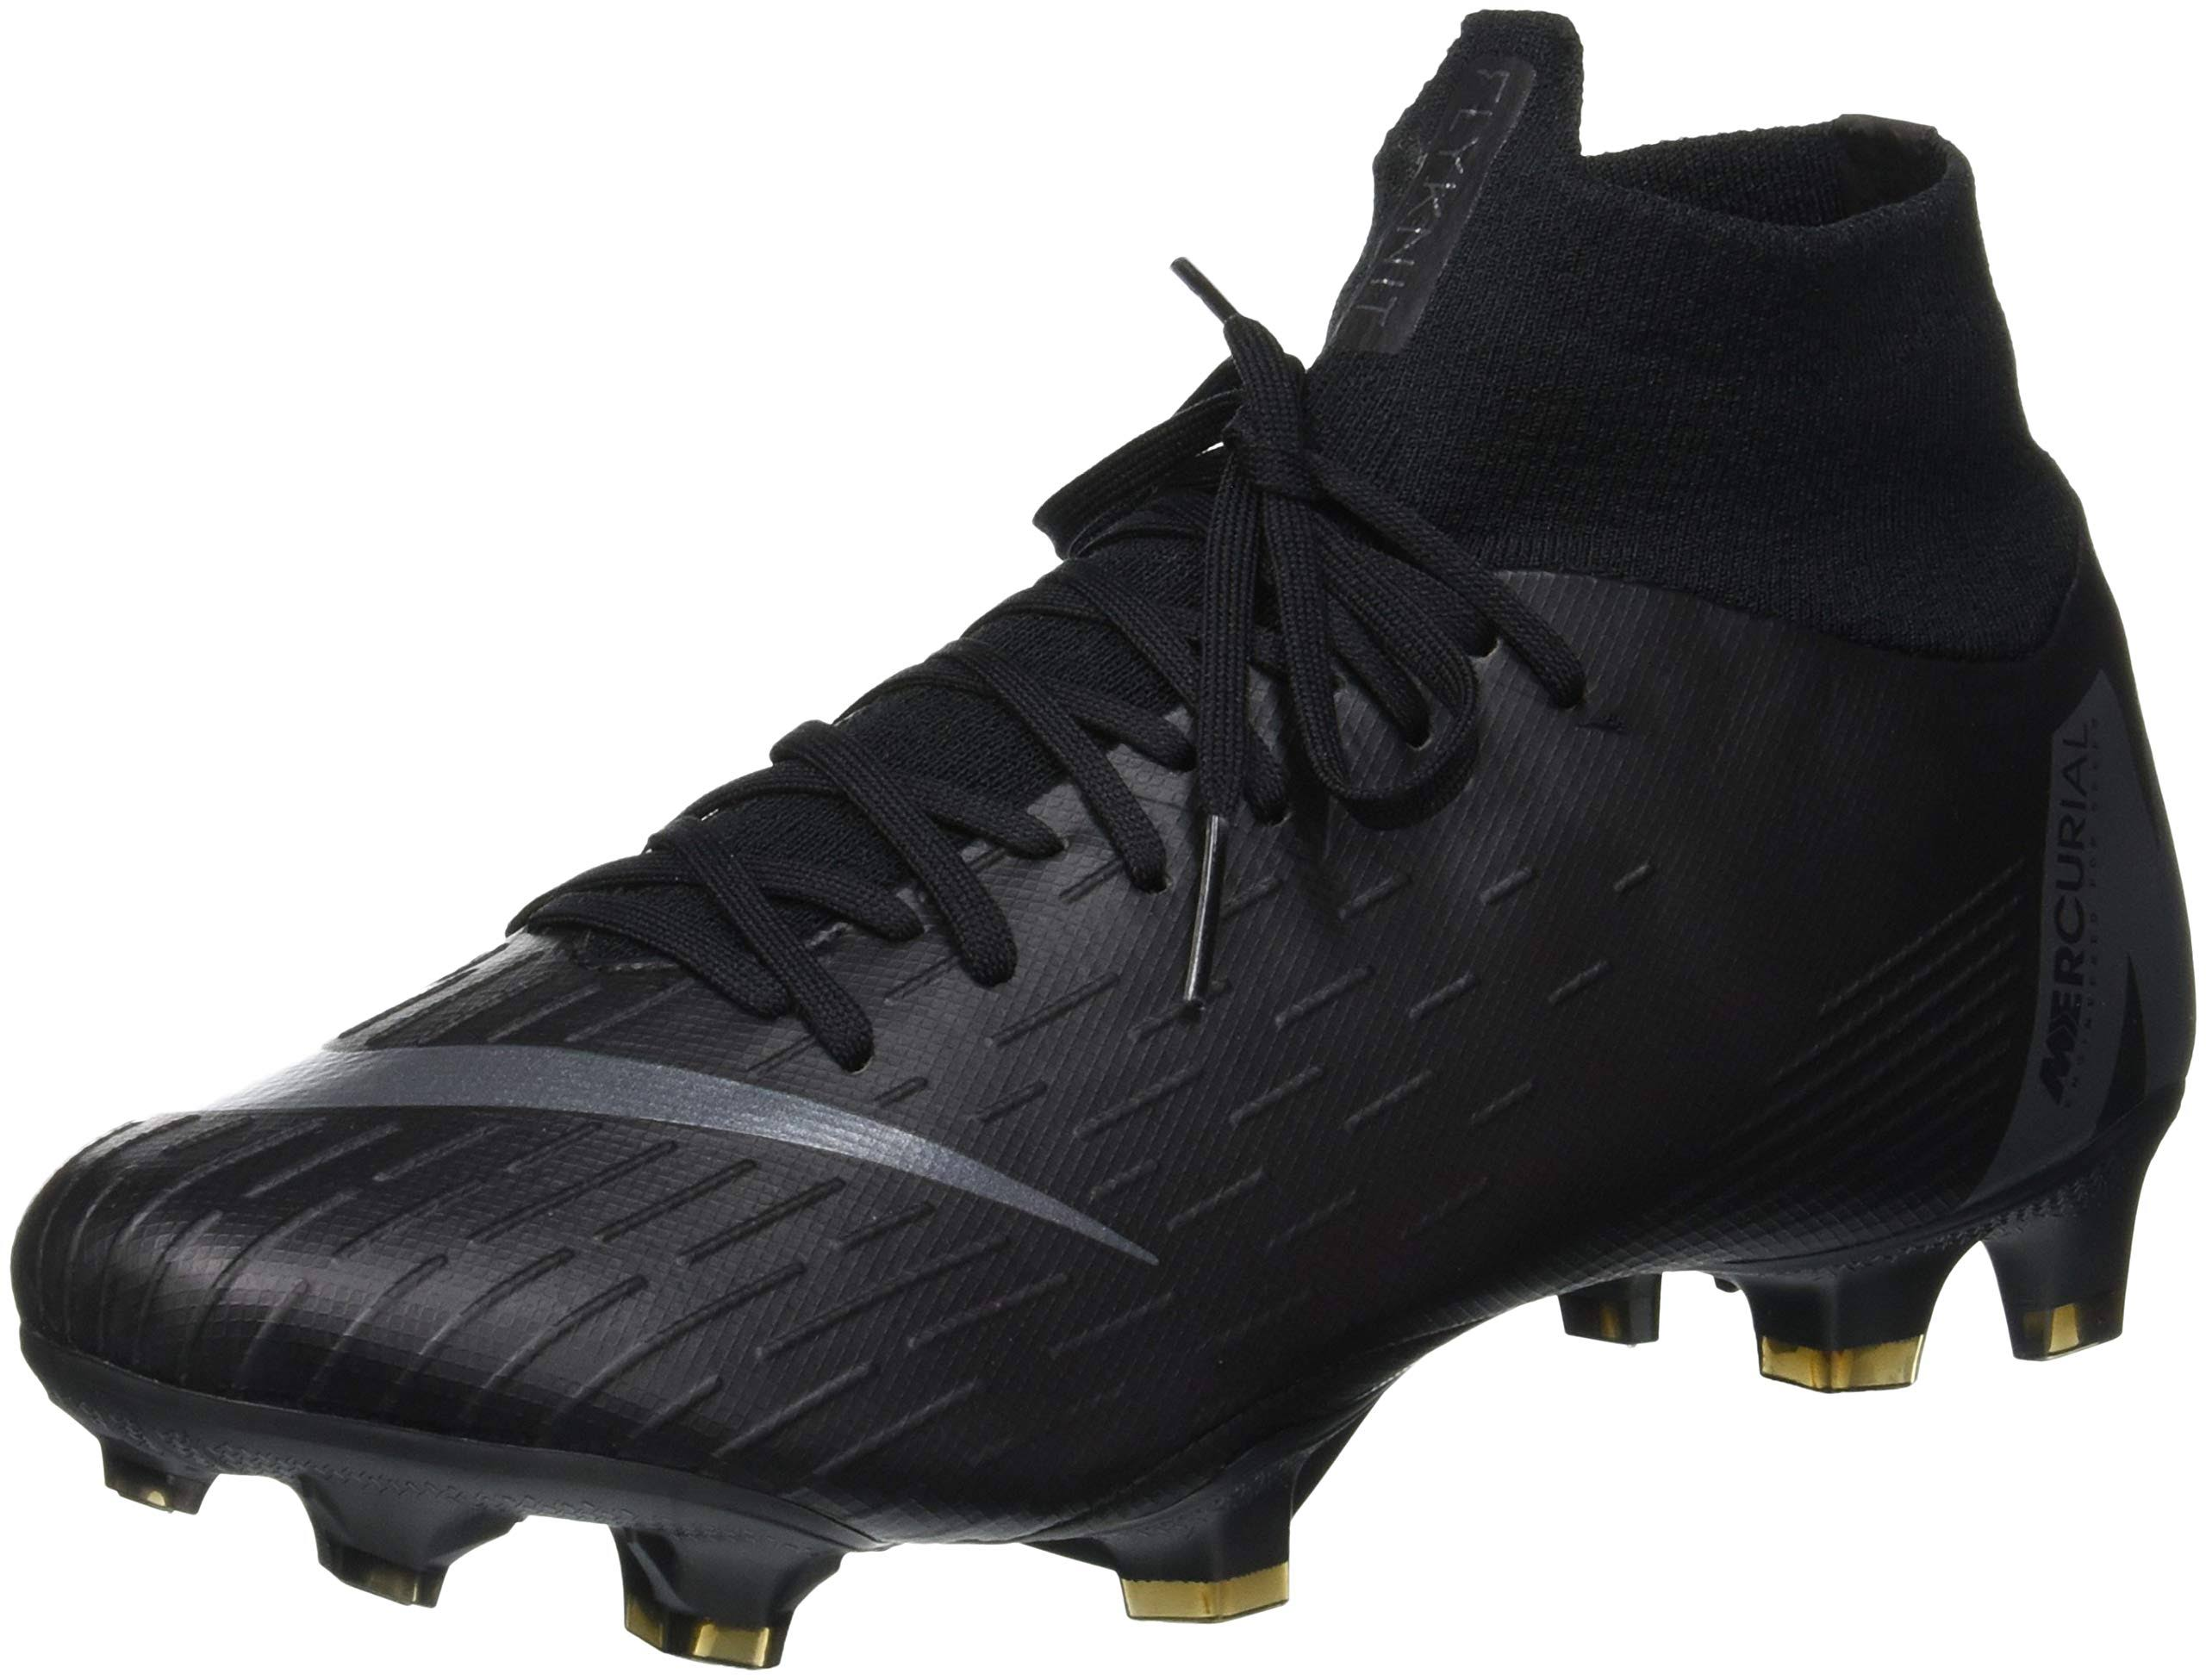 OpsNero Stealth Mercurial Nike Fg Superfly Pro 6 UpzVMS